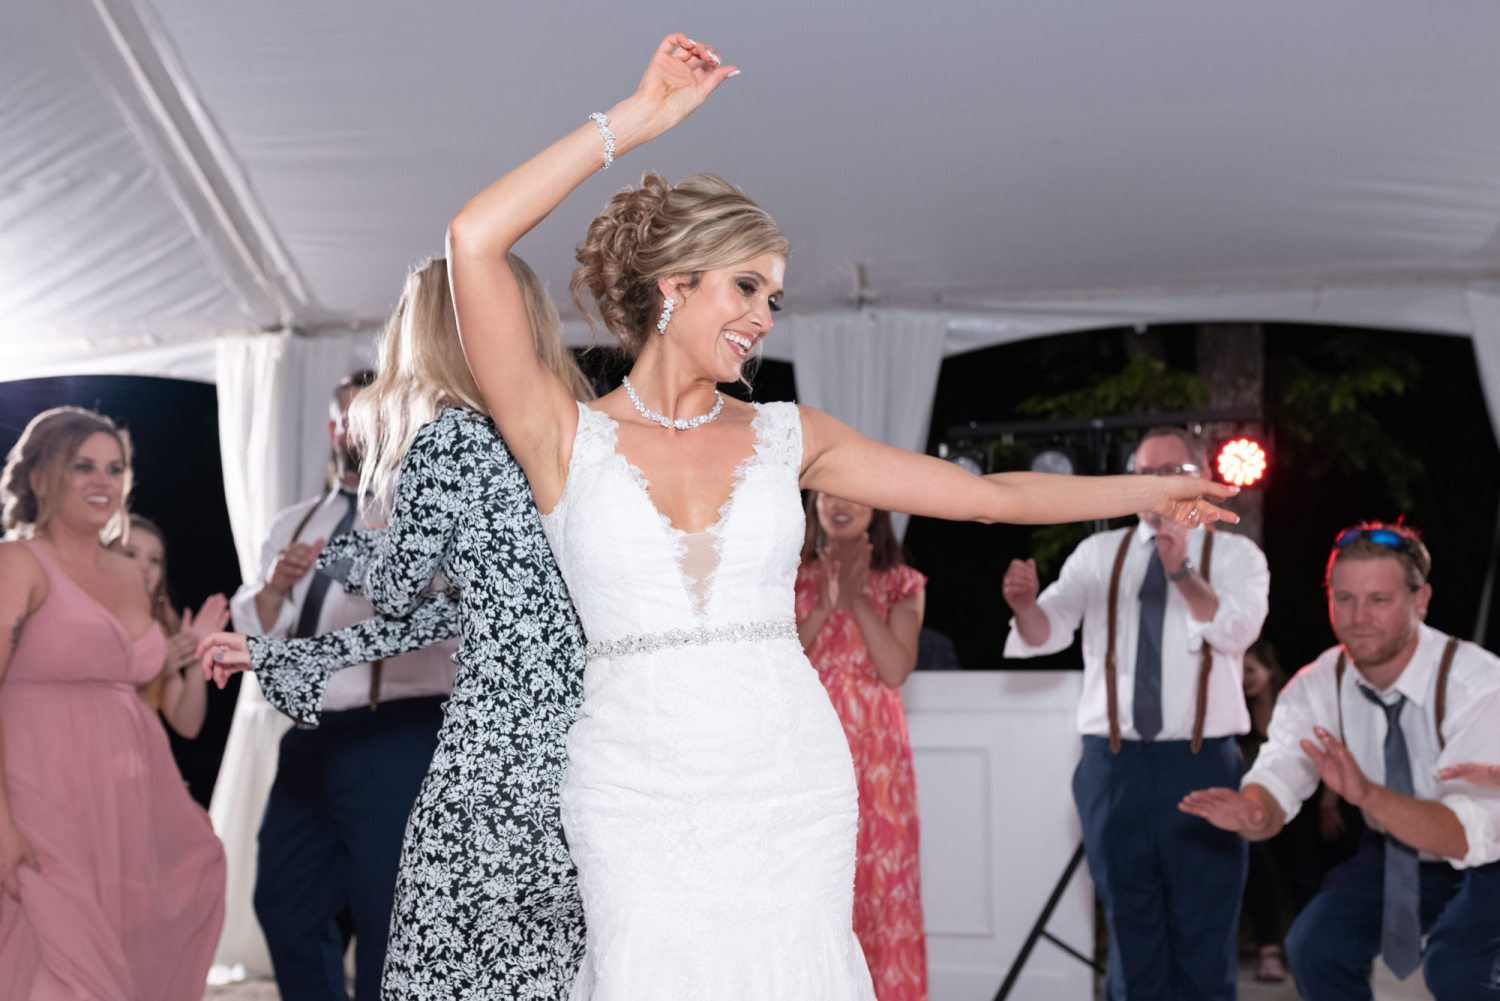 Bride having fun dancing - Brookgreen Gardens